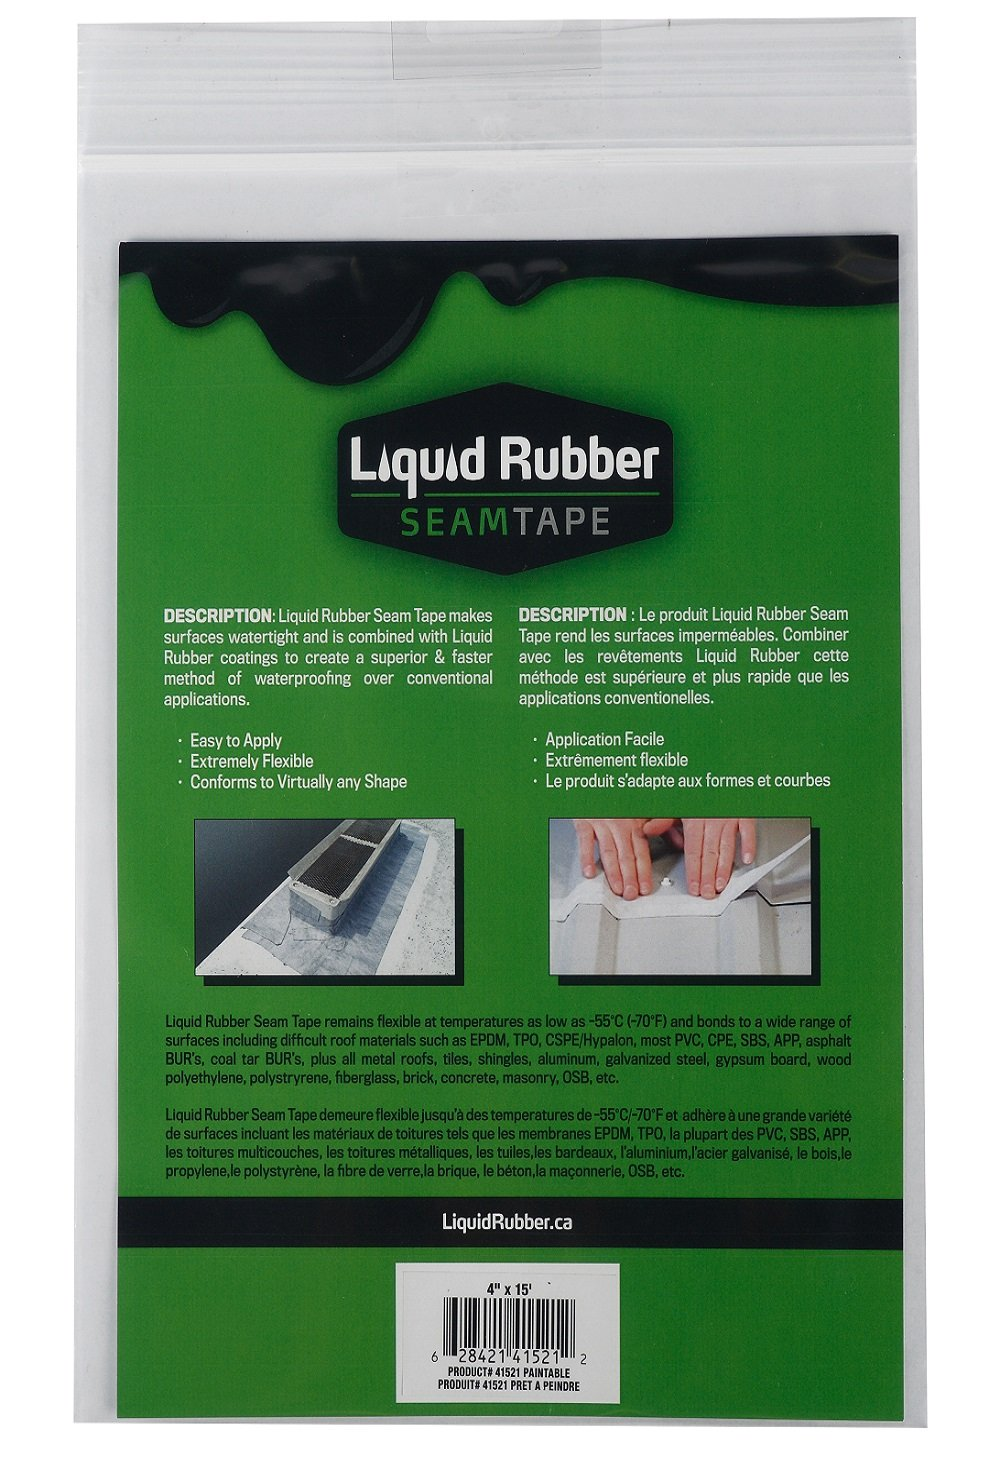 Liquid Rubber Seam Tape - Fix Leaks - For Repairs and Restoration - Easy to Use - Polyester Top to Accept Liquid Rubber Coatings - RV Roofs, Metal Roofs, Gutters... - TOP SELLER - 4'' x 15'